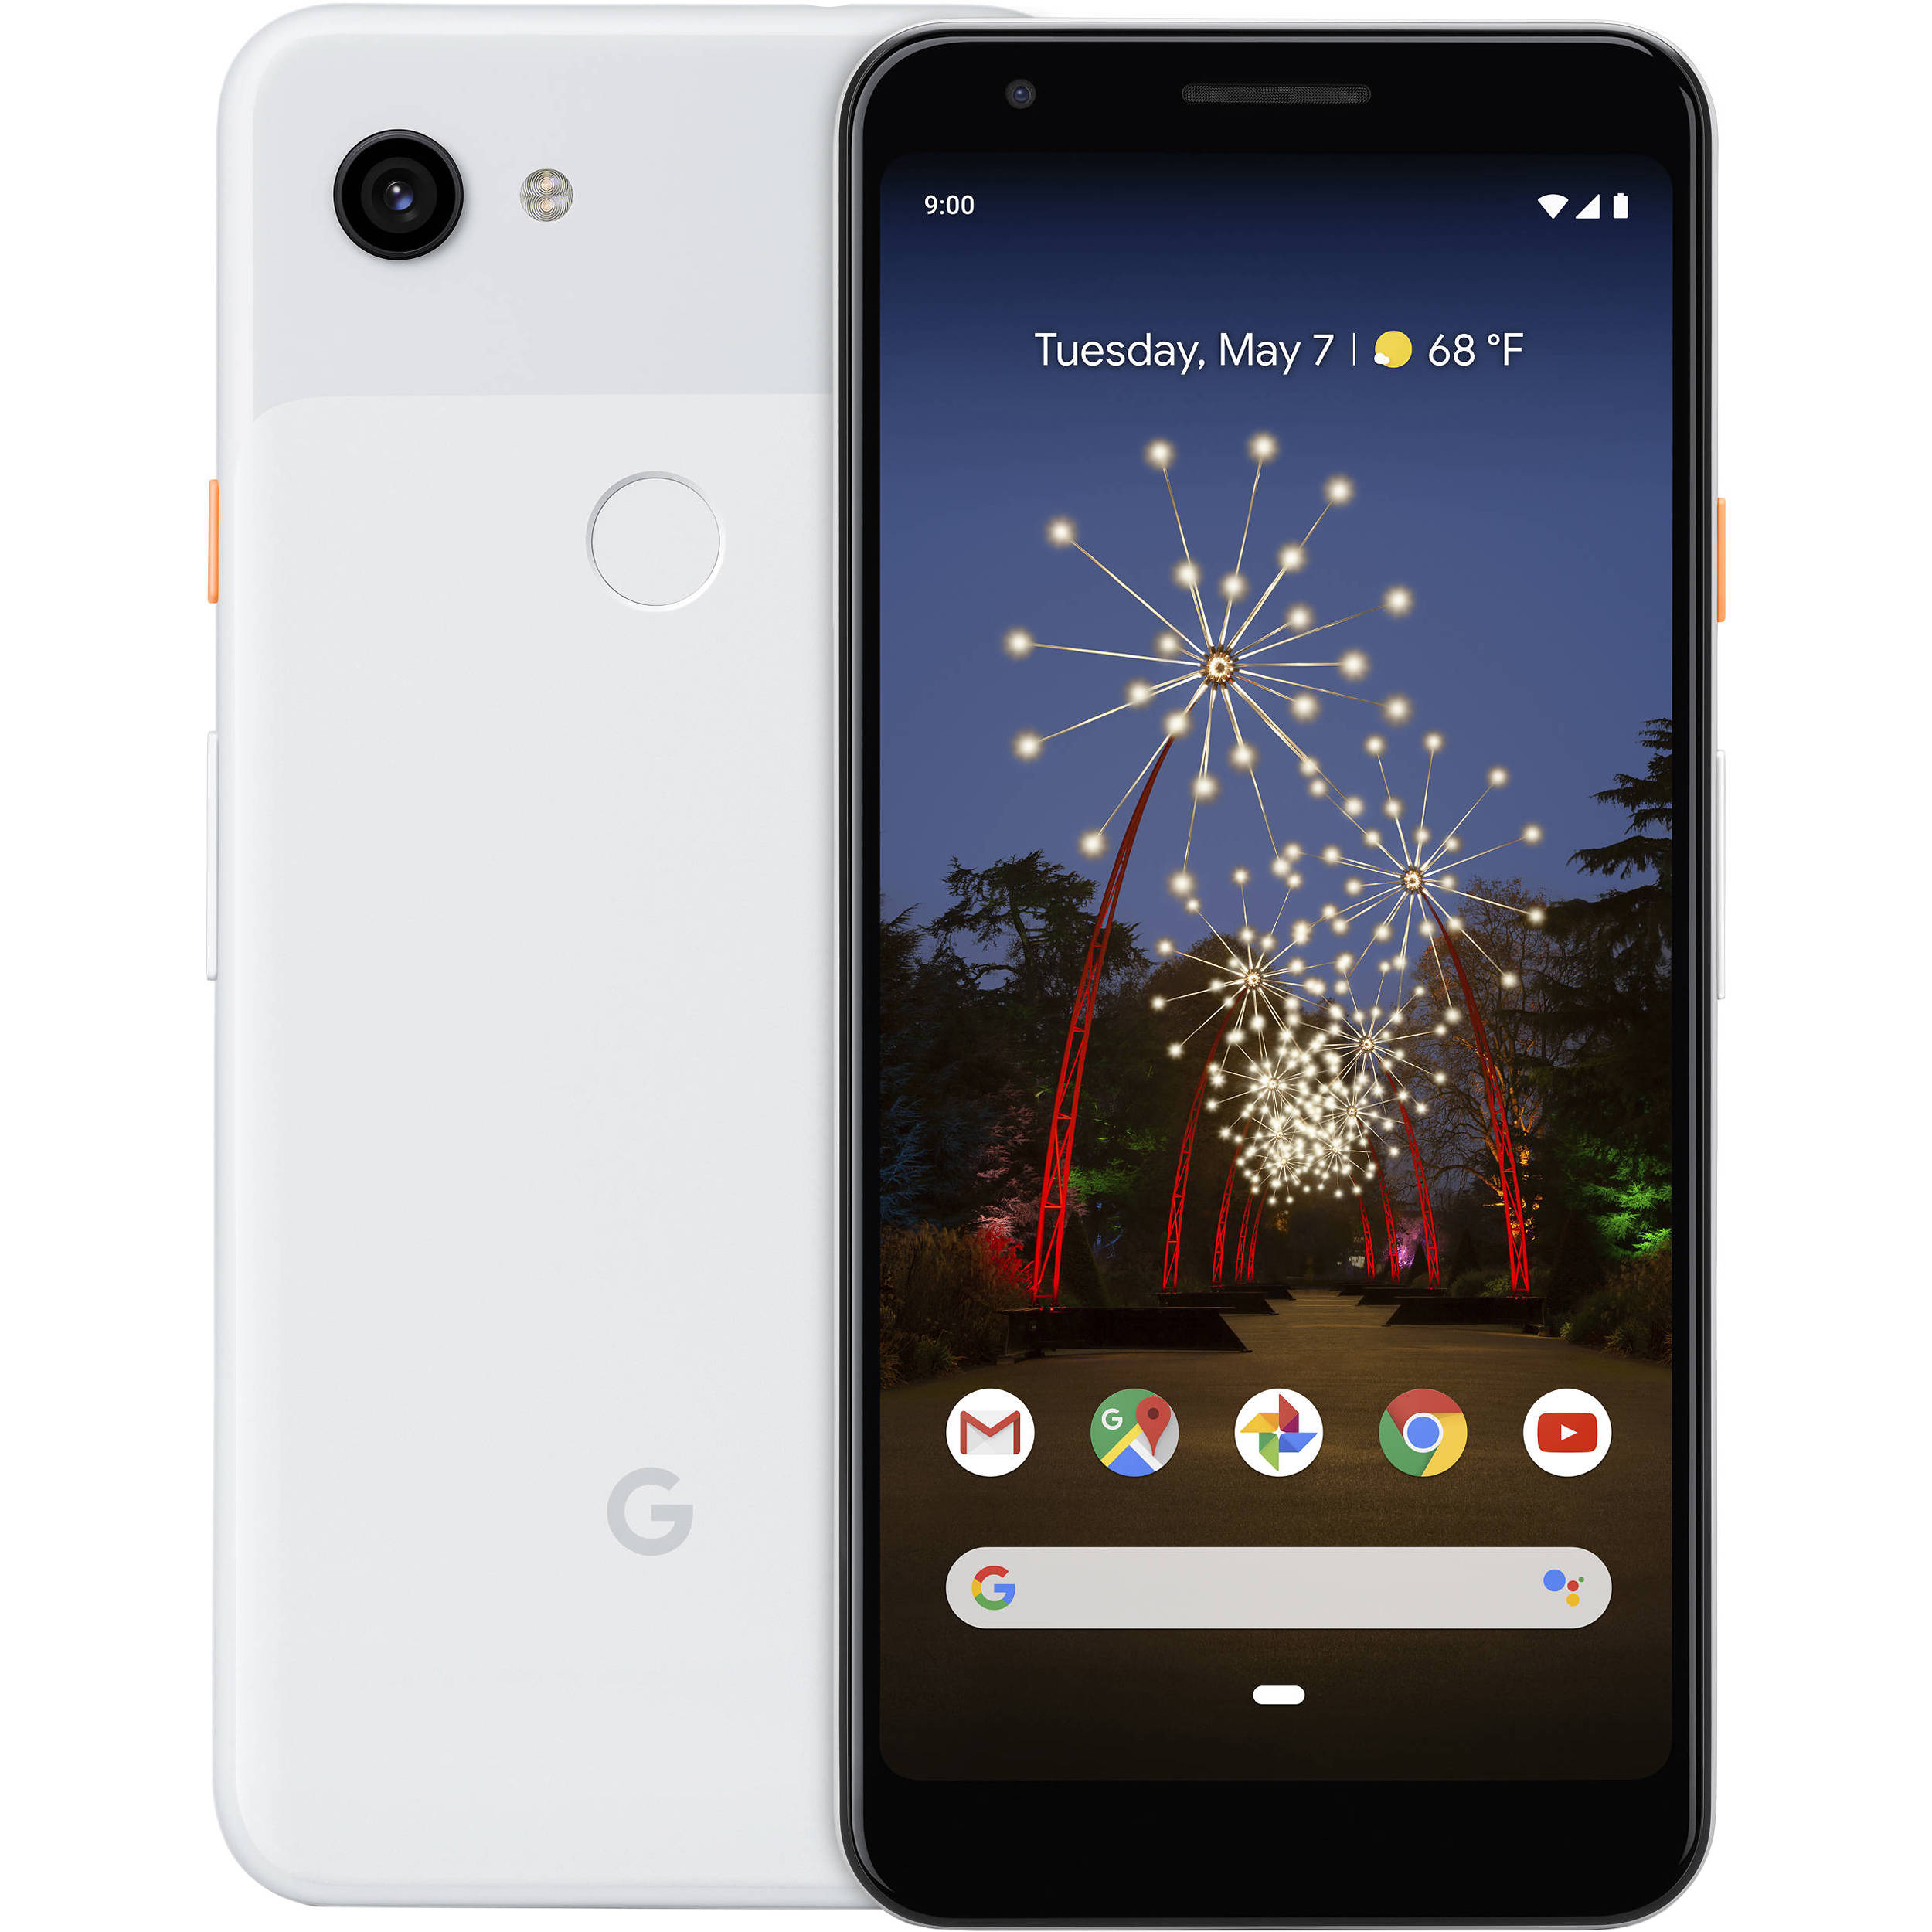 Google Pixel 4 leaks continue ahead of October launch